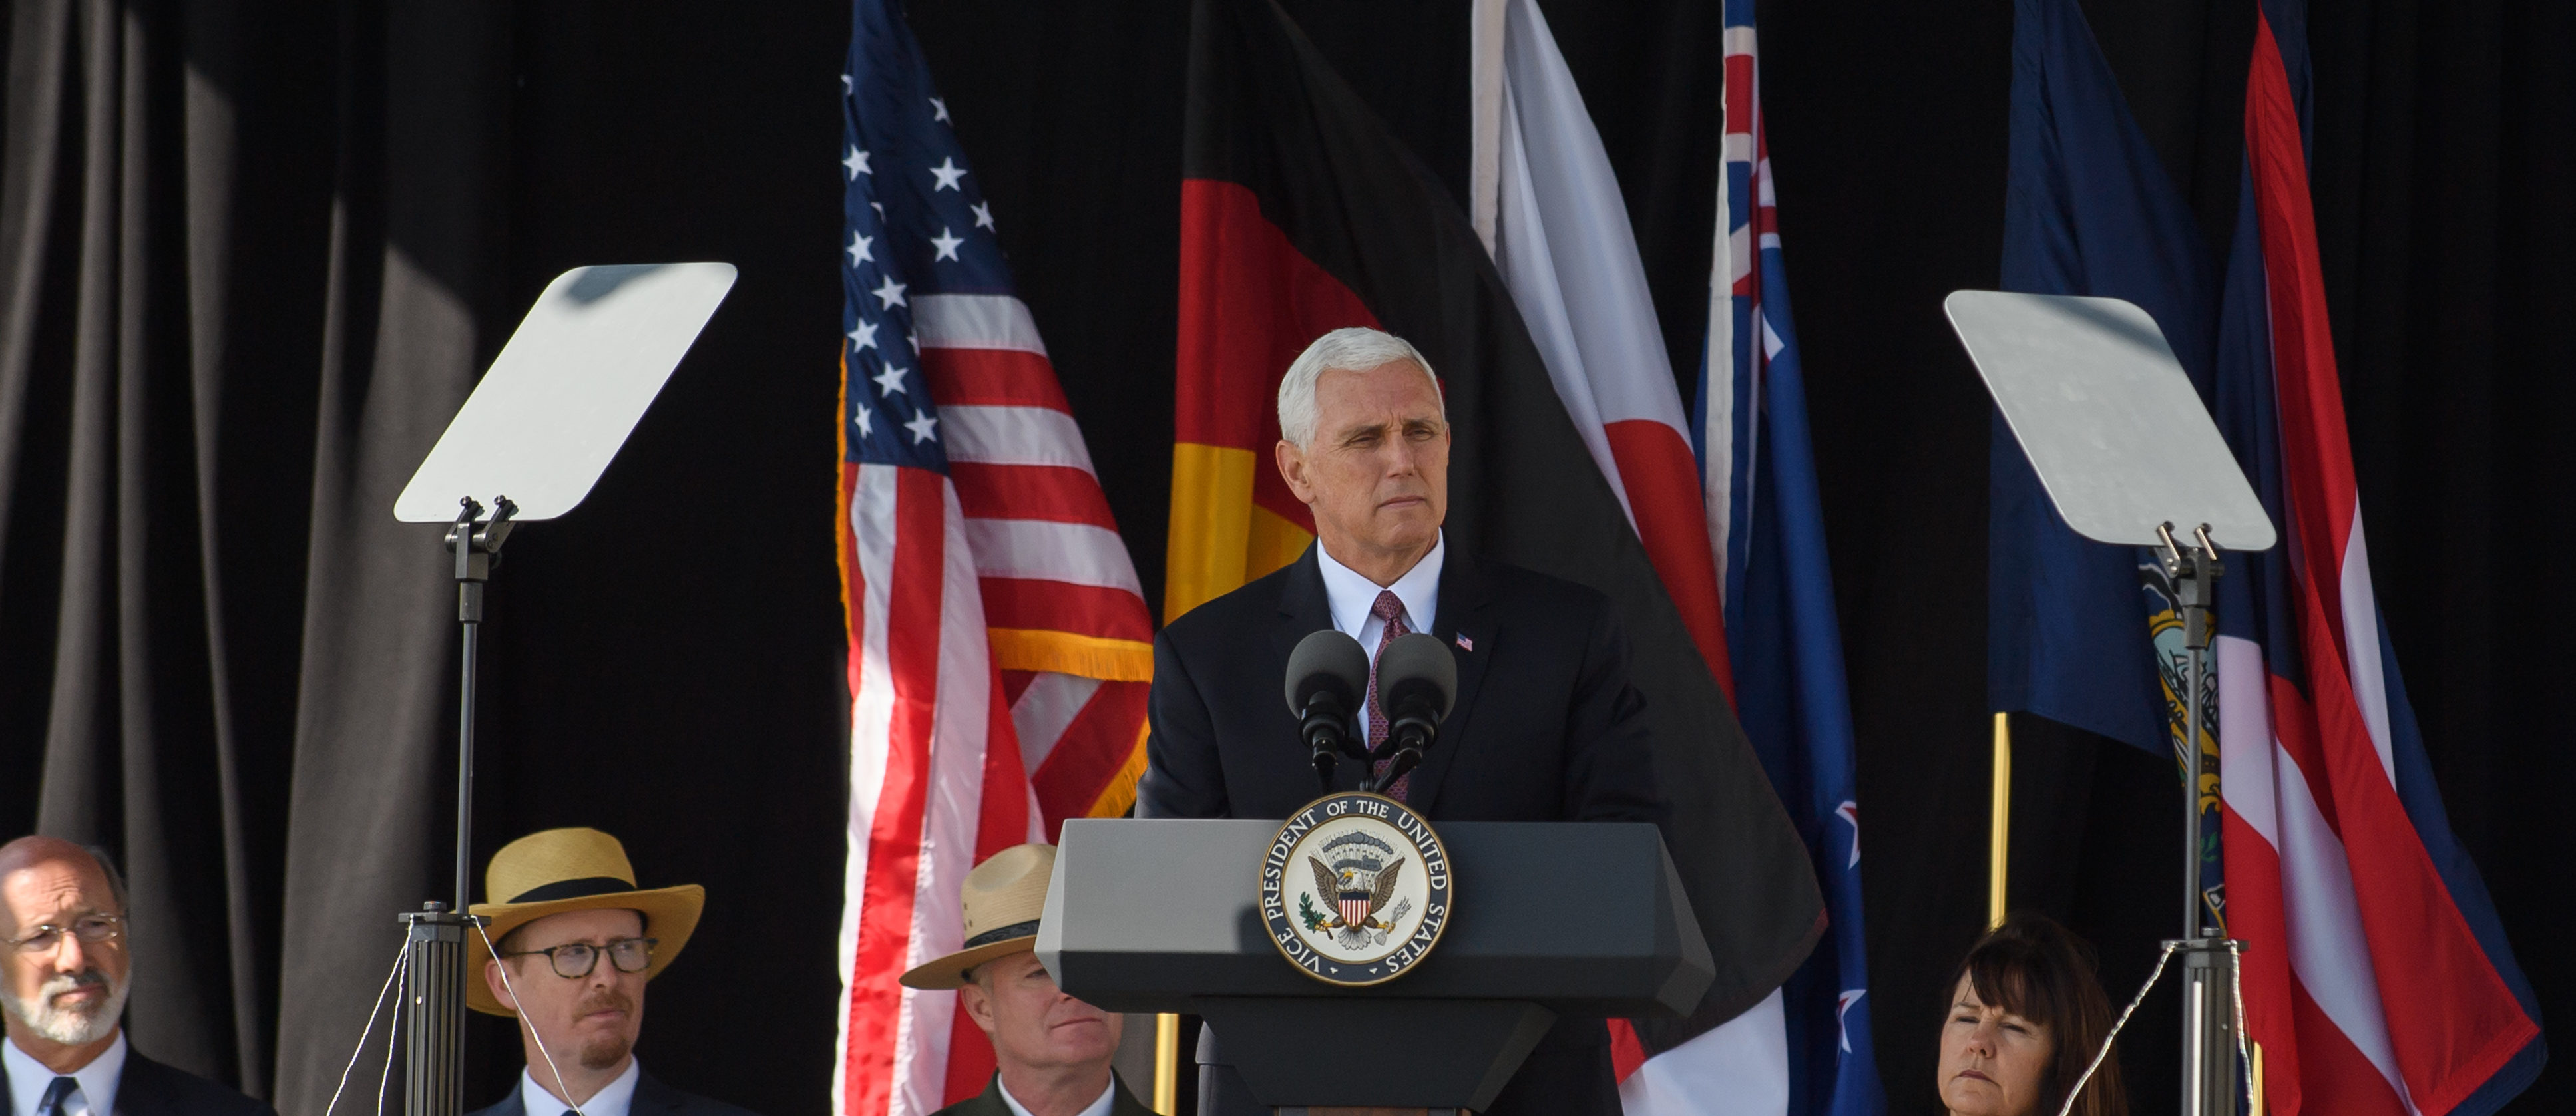 SHANKSVILLE, PA - SEPTEMBER 11: Vice President Mike Pence speaks to visitors at the Flight 93 National Memorial on the 16th Anniversary ceremony of the September 11th terrorist attacks, September 11, 2017 in Shanksville, Pennsylvania. United Airlines Flight 93 crashed into a field outside Shanksville, PA with 40 passengers and 4 hijackers aboard on September 11, 2001. (Photo by Jeff Swensen/Getty Images)